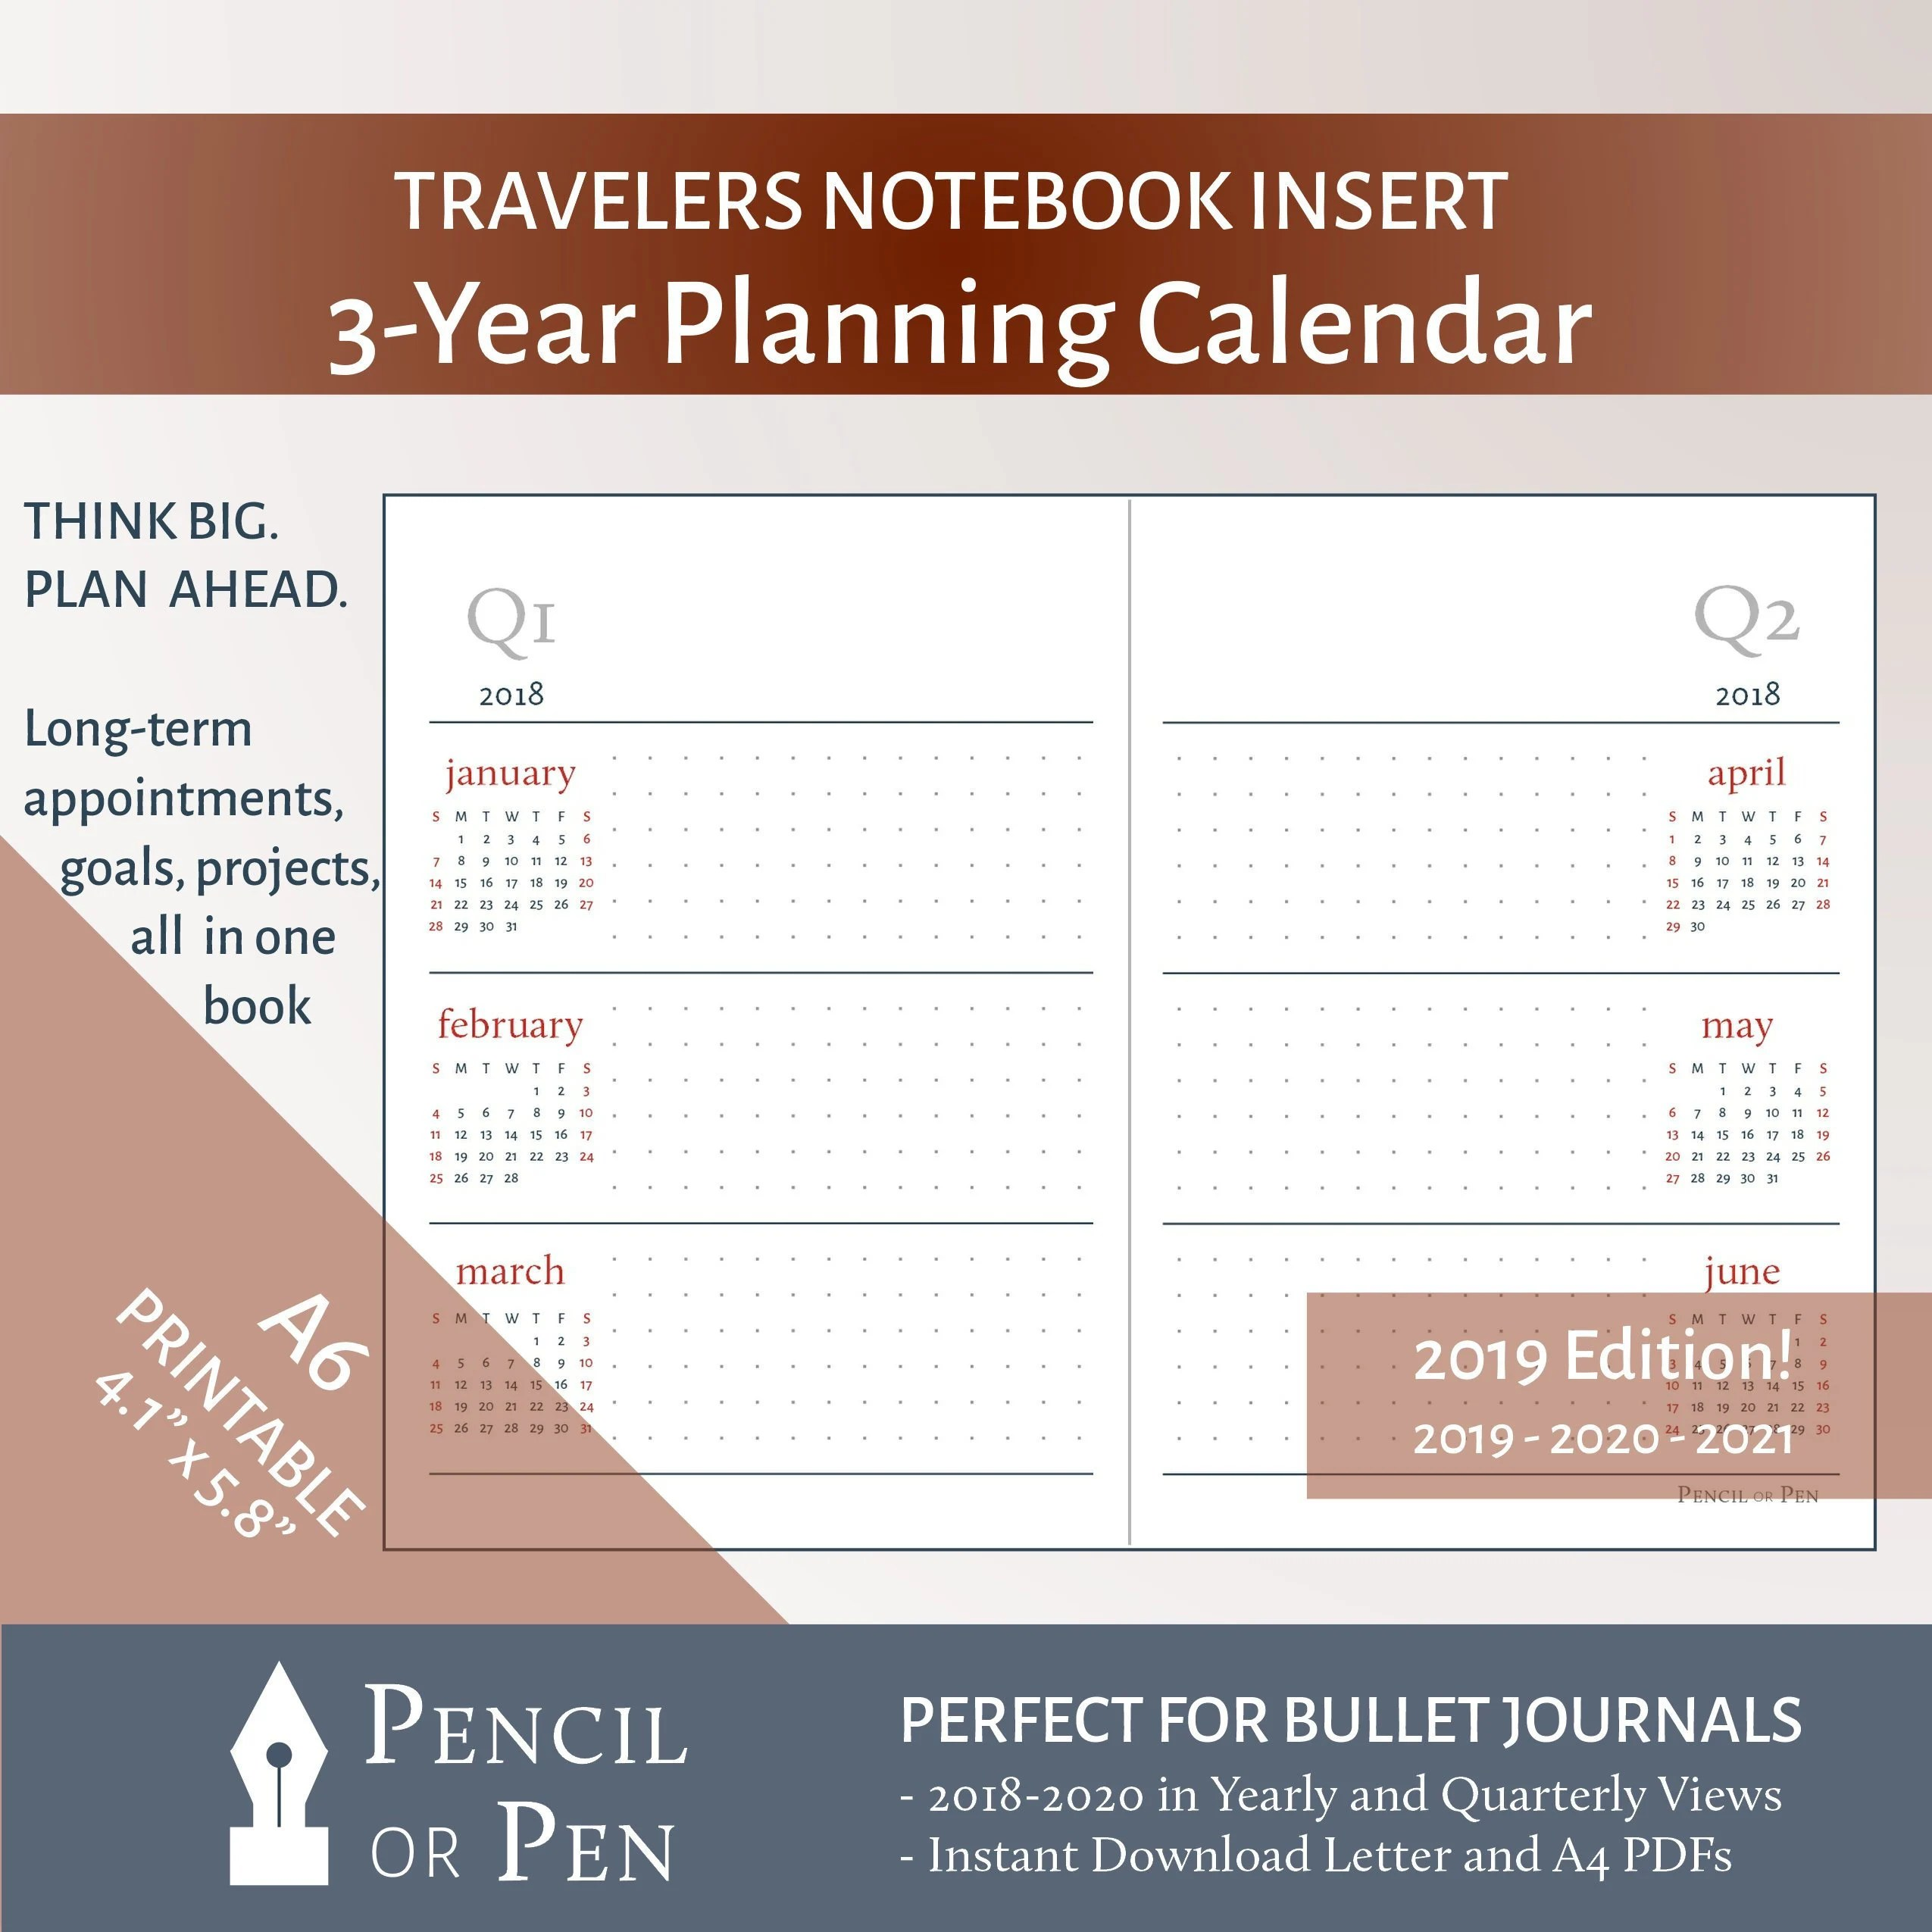 A6 3-Year Planning Calendar 2019 2021 Travelers Notebook Etsy